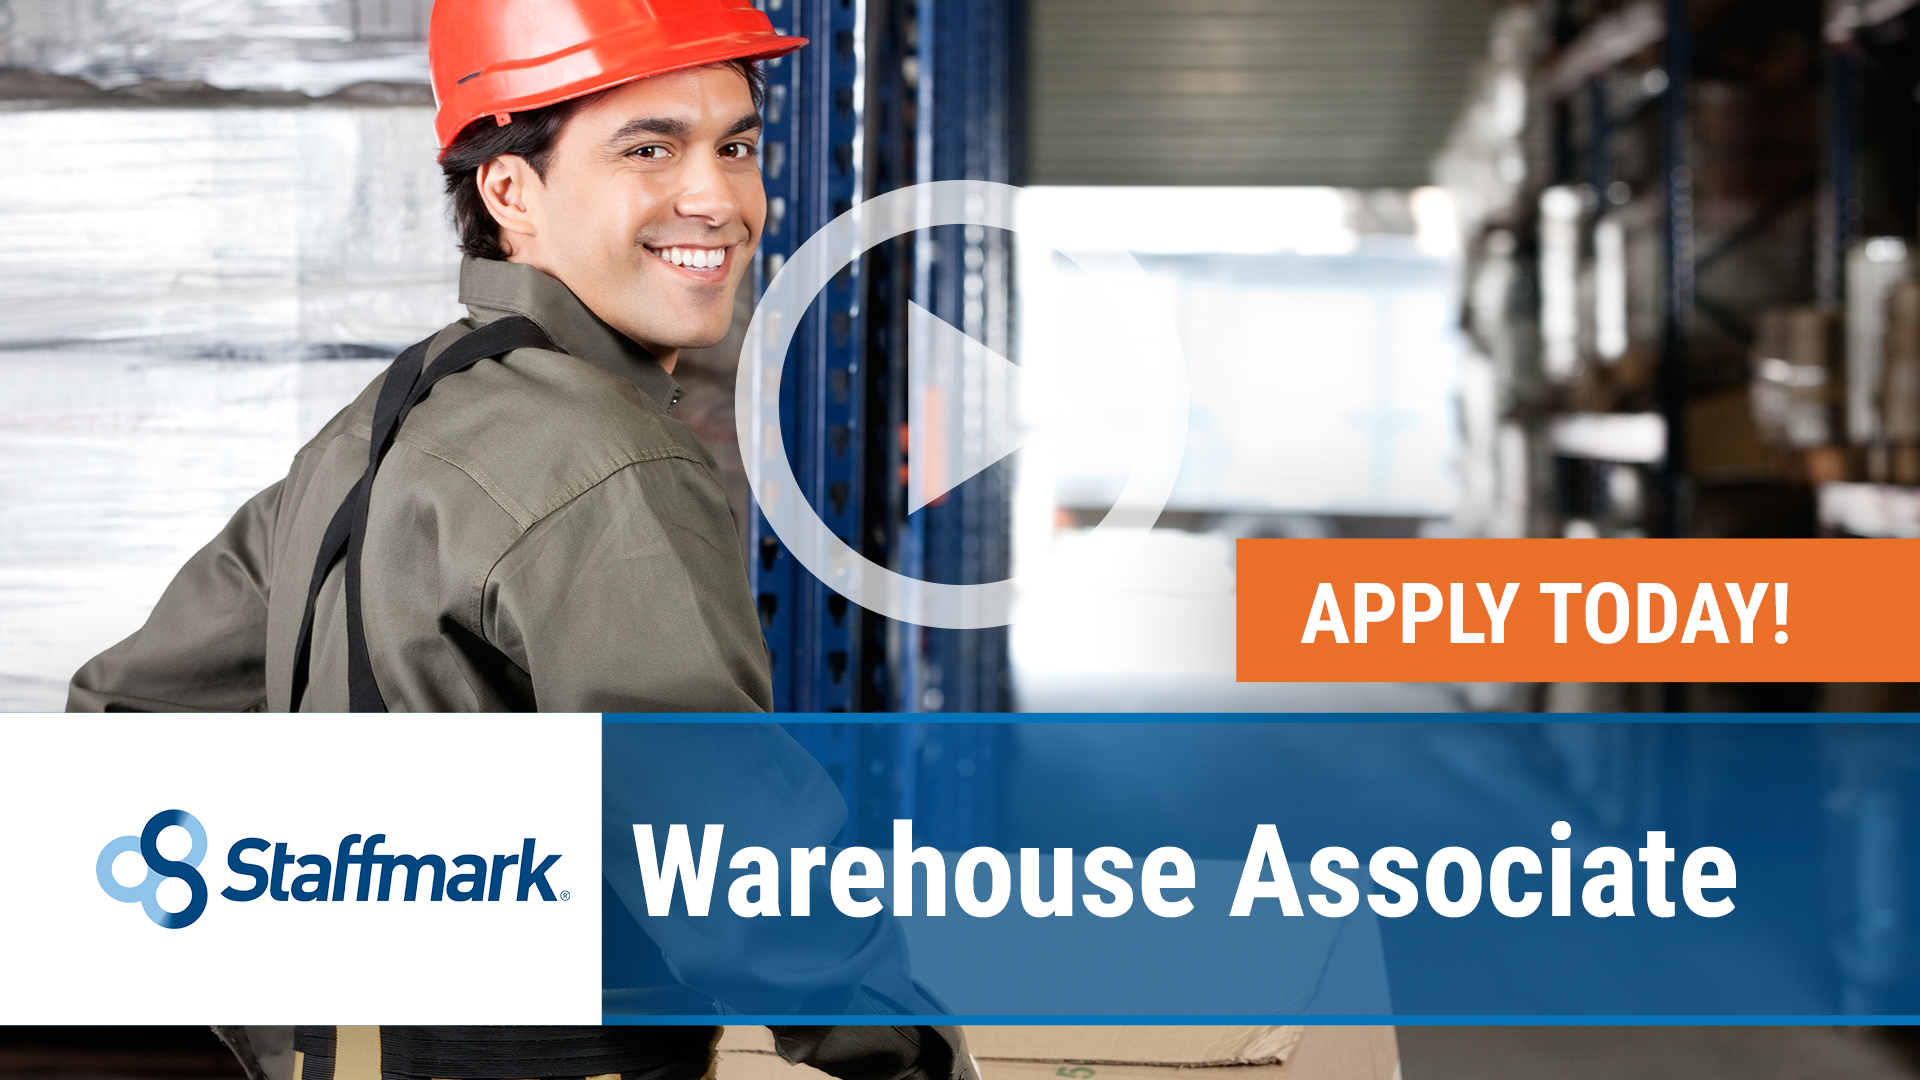 Watch our careers video for available job opening Warehouse Associate in Smyrna, TN